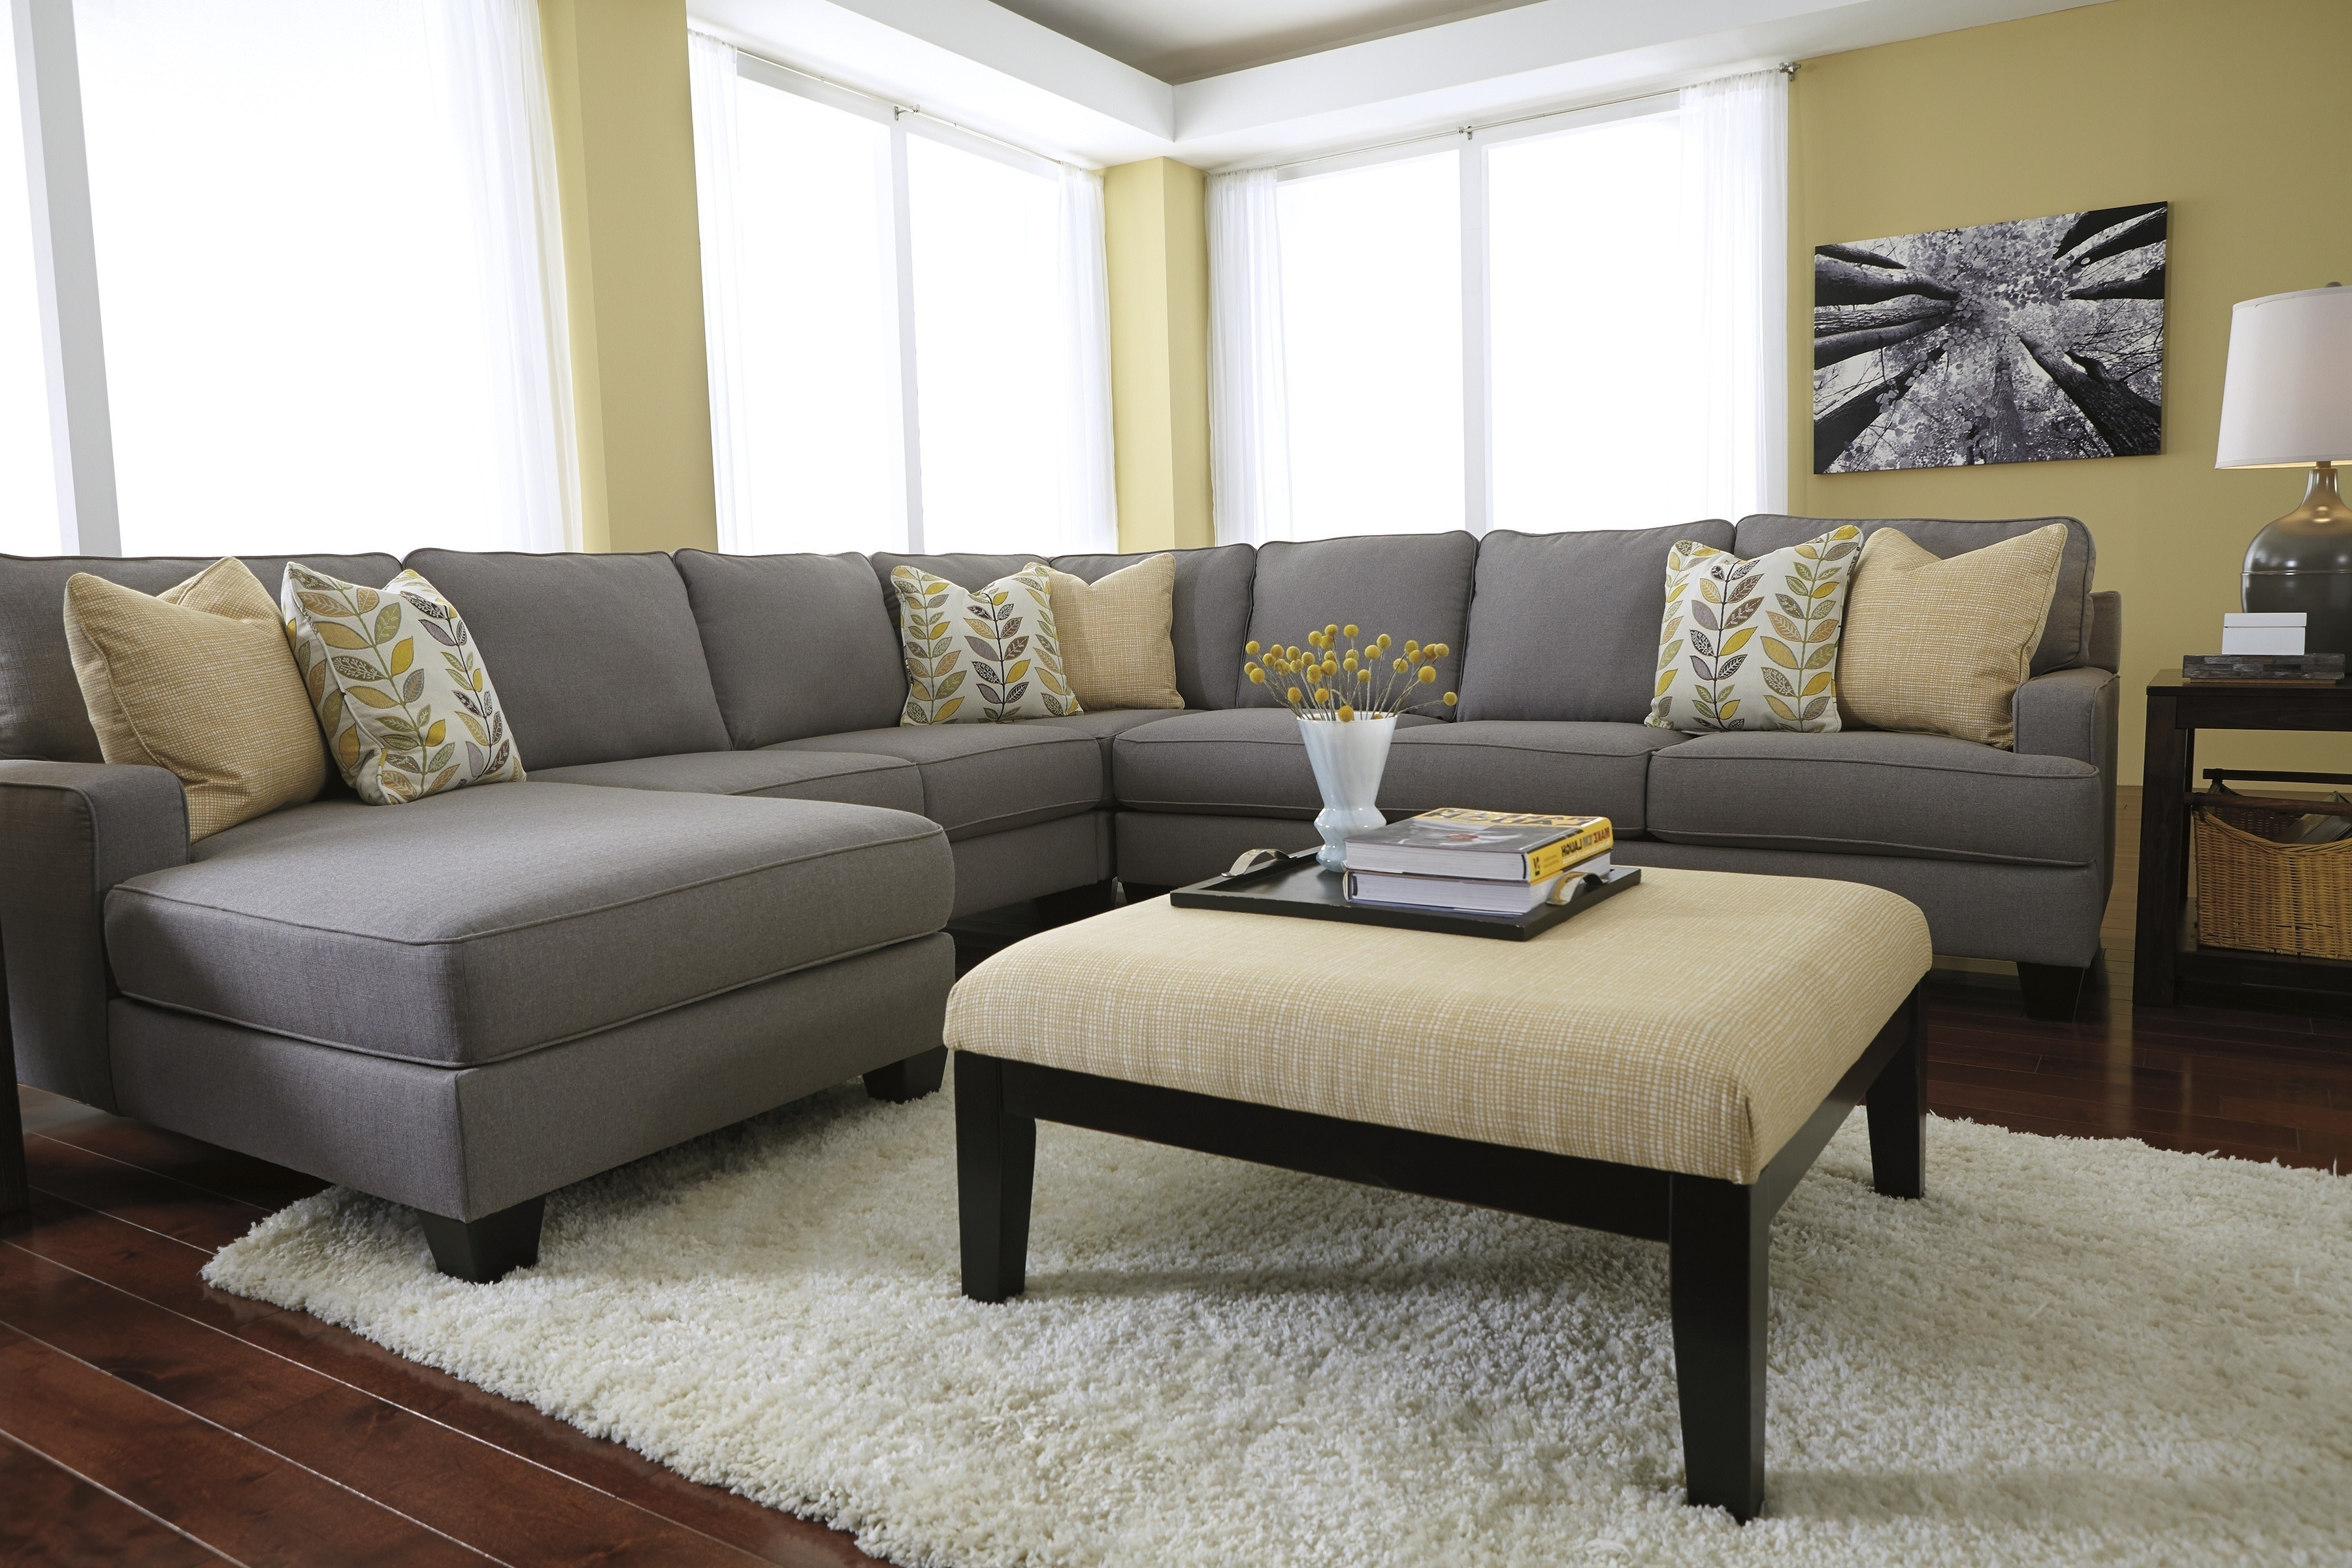 Well Known Sofas With Oversized Pillows Intended For Living Room : Pillows For Sectional Sofa Oversized Couch Pillows (Gallery 8 of 20)